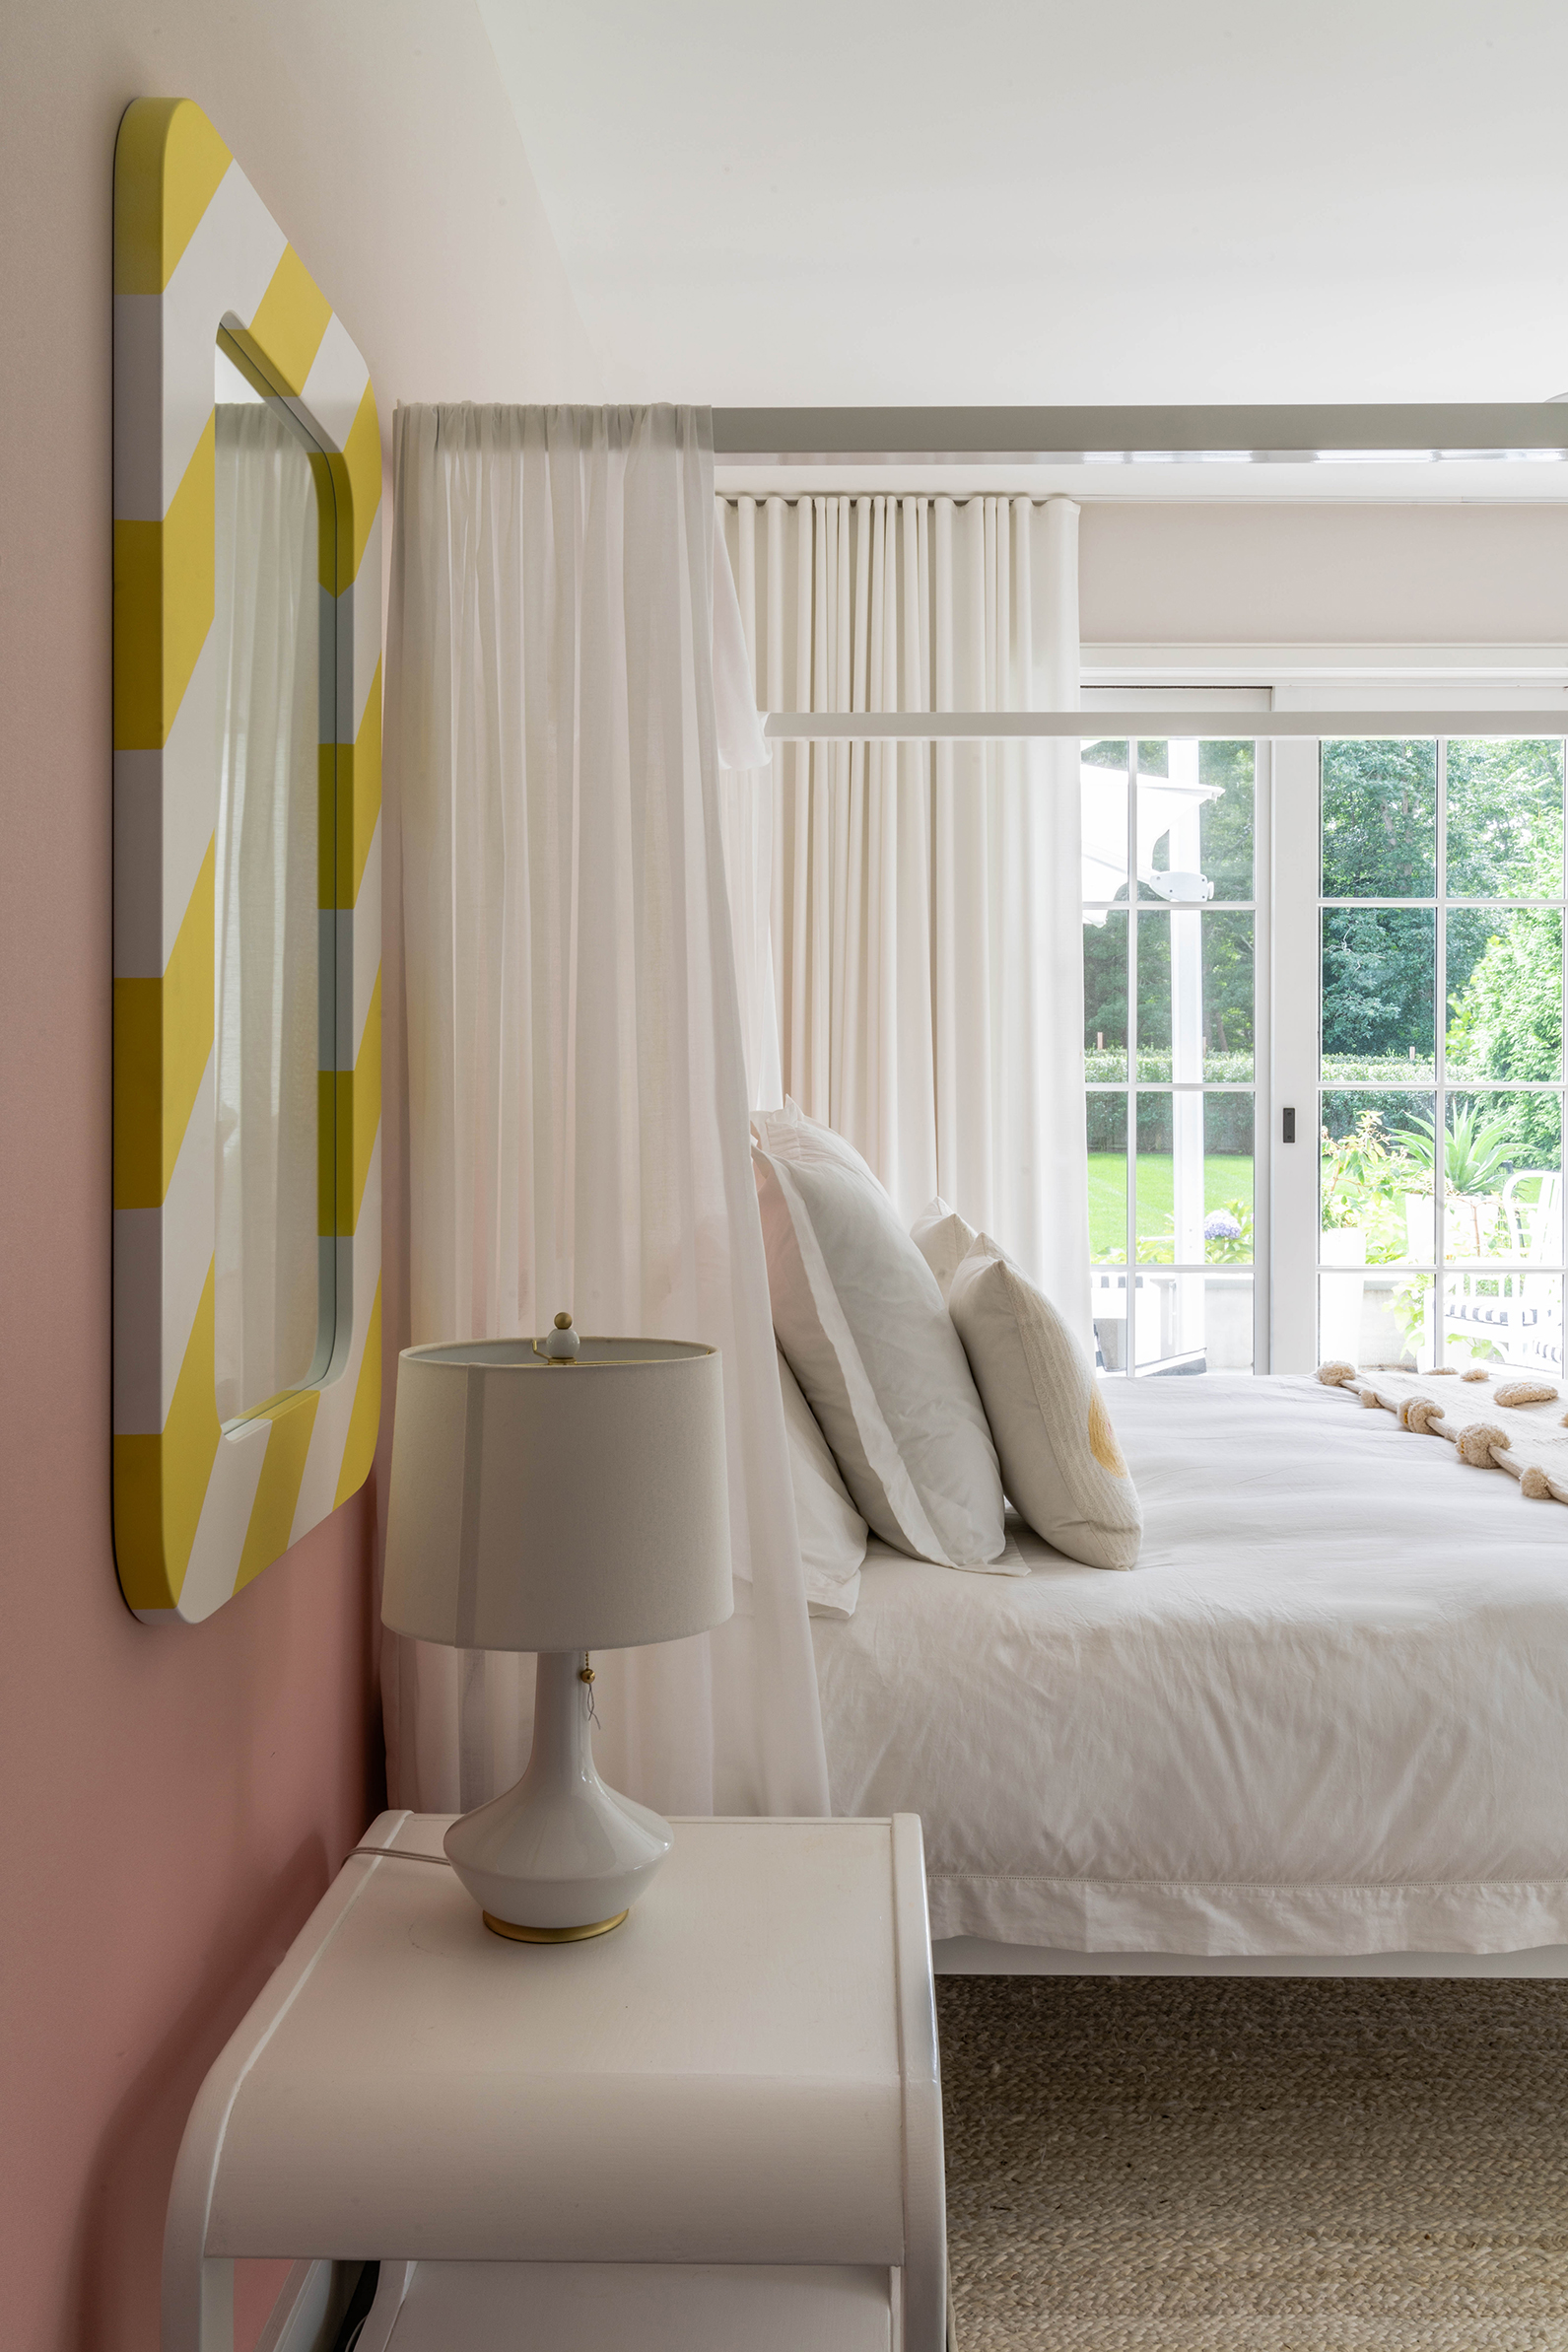 ©+ghislaine+vinas+interior+design_east-hampton-home_17.jpg